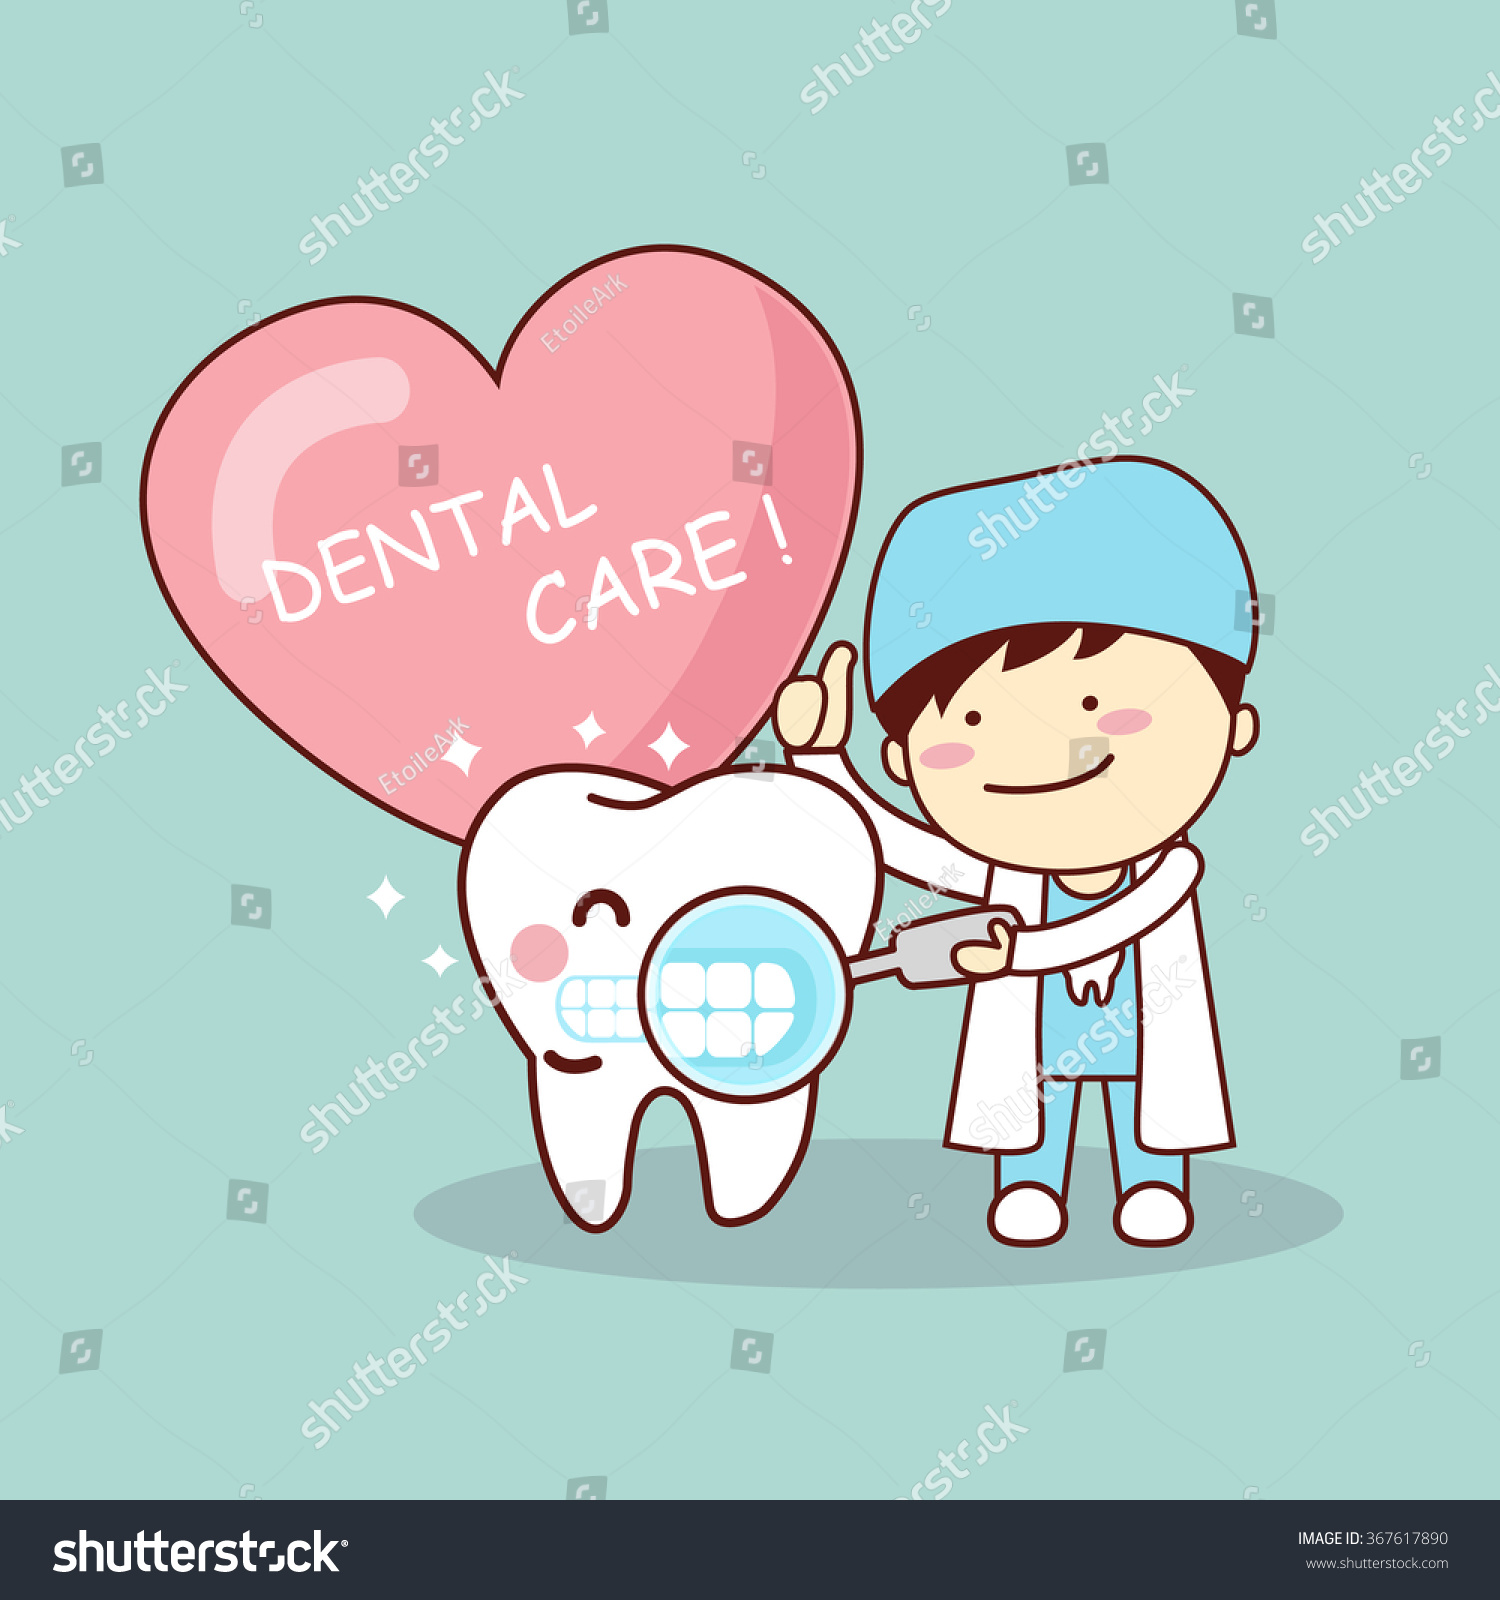 stock-vector-happy-cartoon-tooth-and-dentist-with-love-heart-great-for-health-dental-care-concept-367617890.jpg